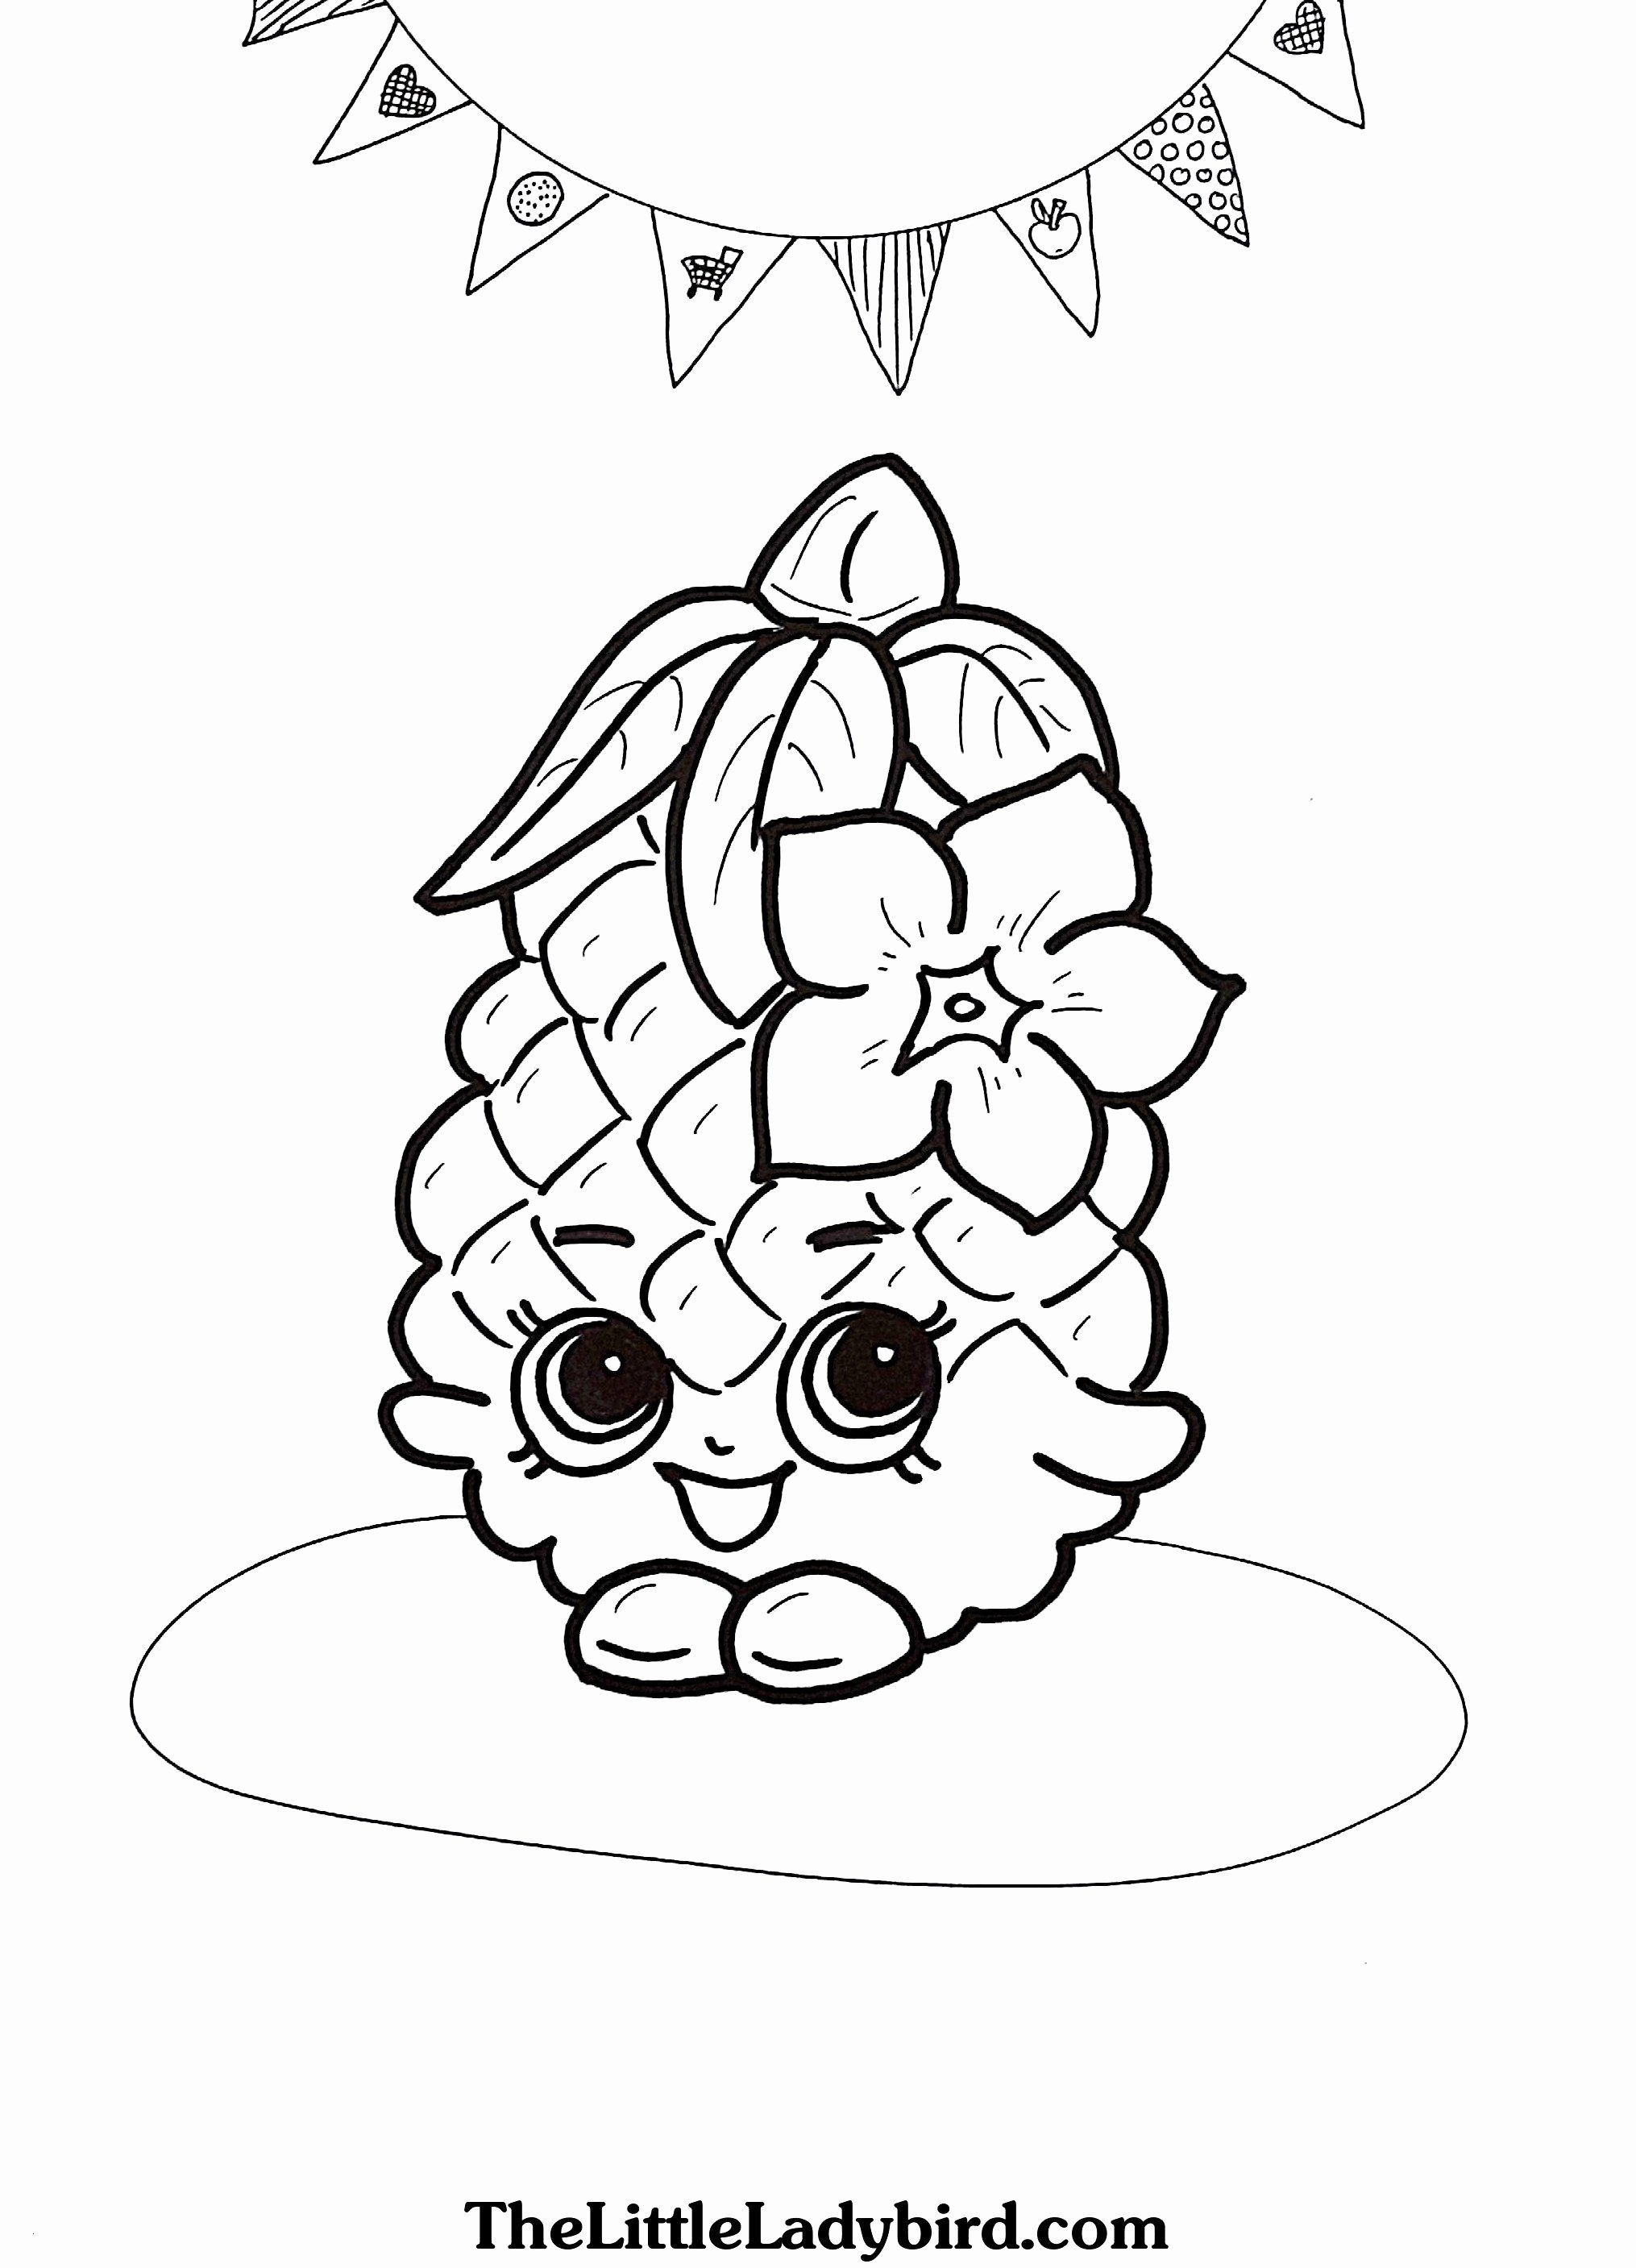 Alphabet Coloring Book Printable Pdf Best Of 20 Alphabet Coloring Pages Az Download Colori Valentine Coloring Pages Summer Coloring Pages Animal Coloring Pages